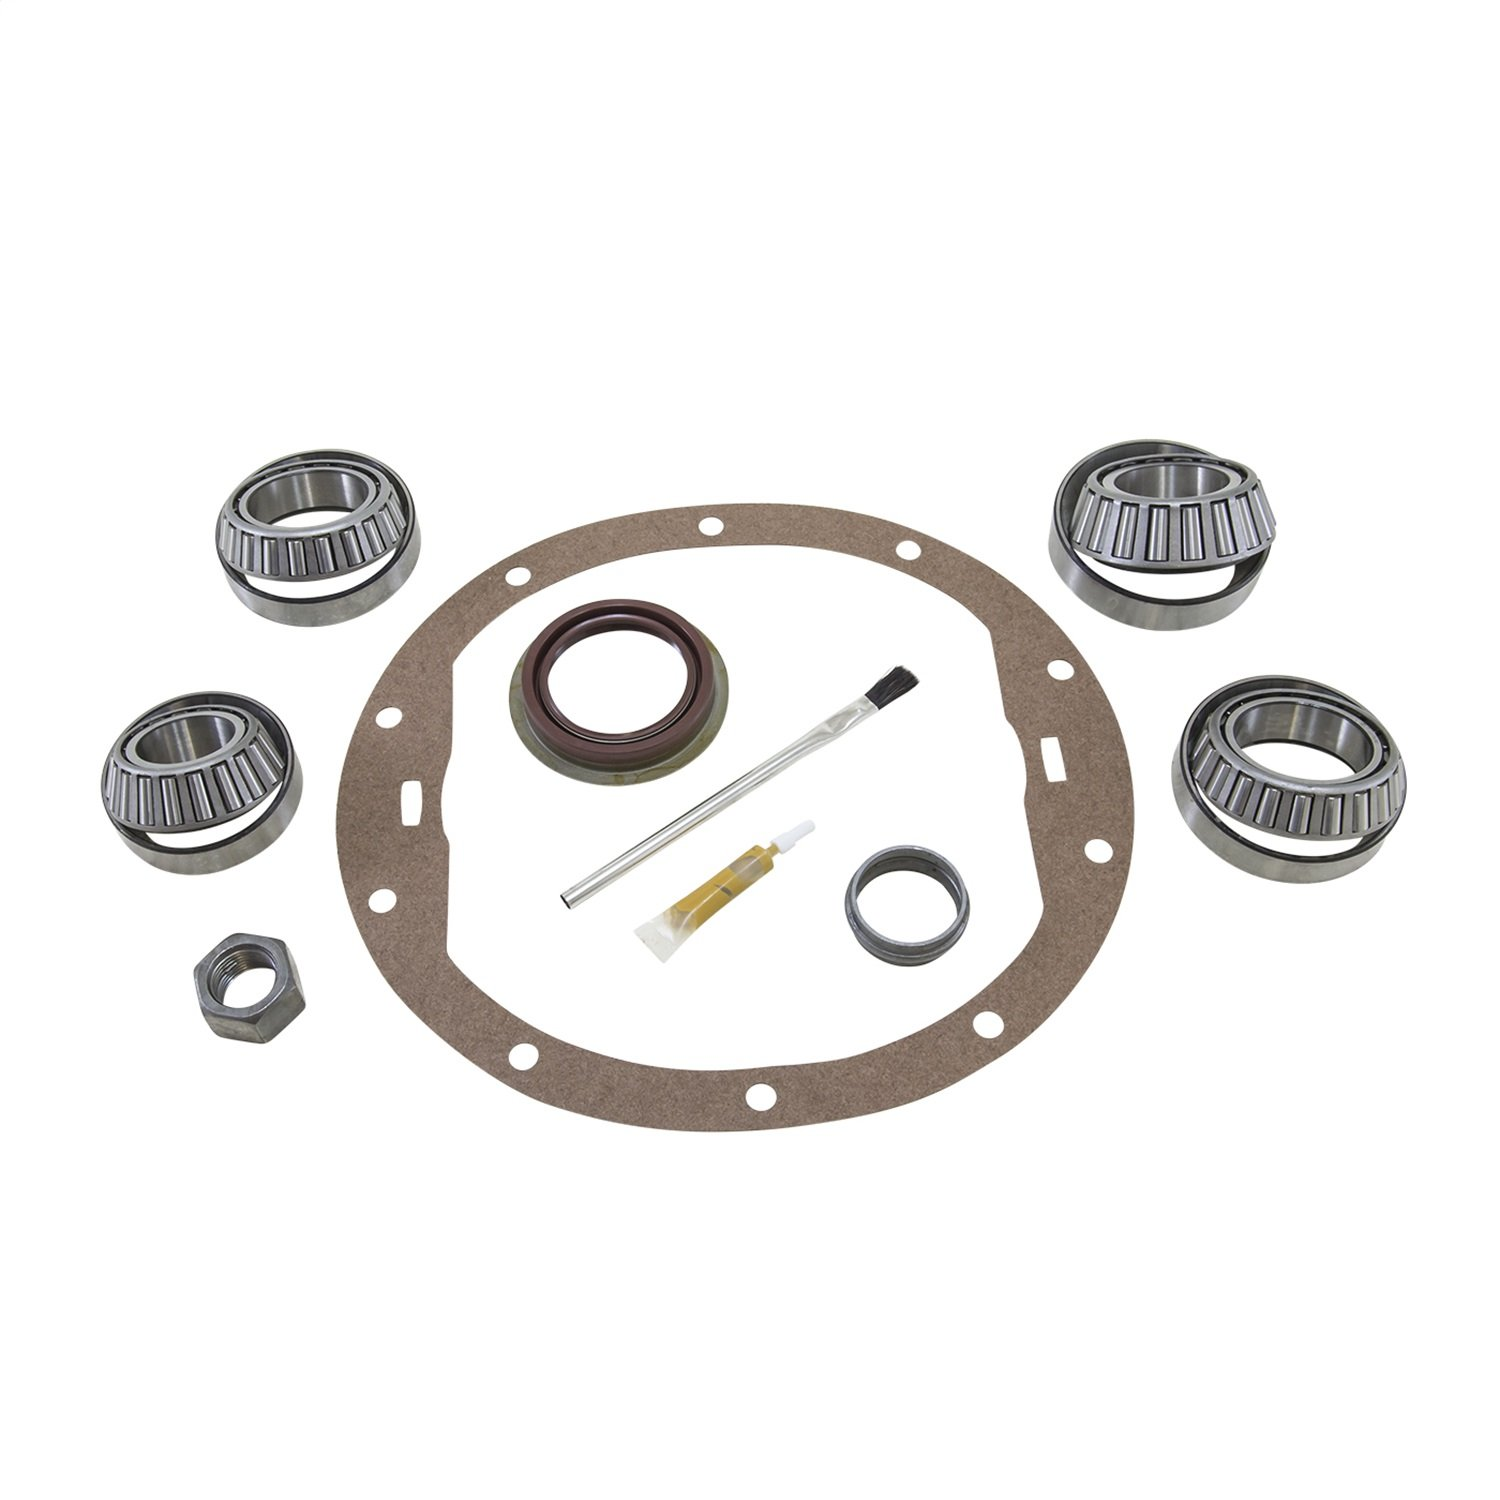 BK GM55CHEVY Bearing Installation Kit for GM//Chevrolet Passenger Car Differential Yukon Gear /& Axle